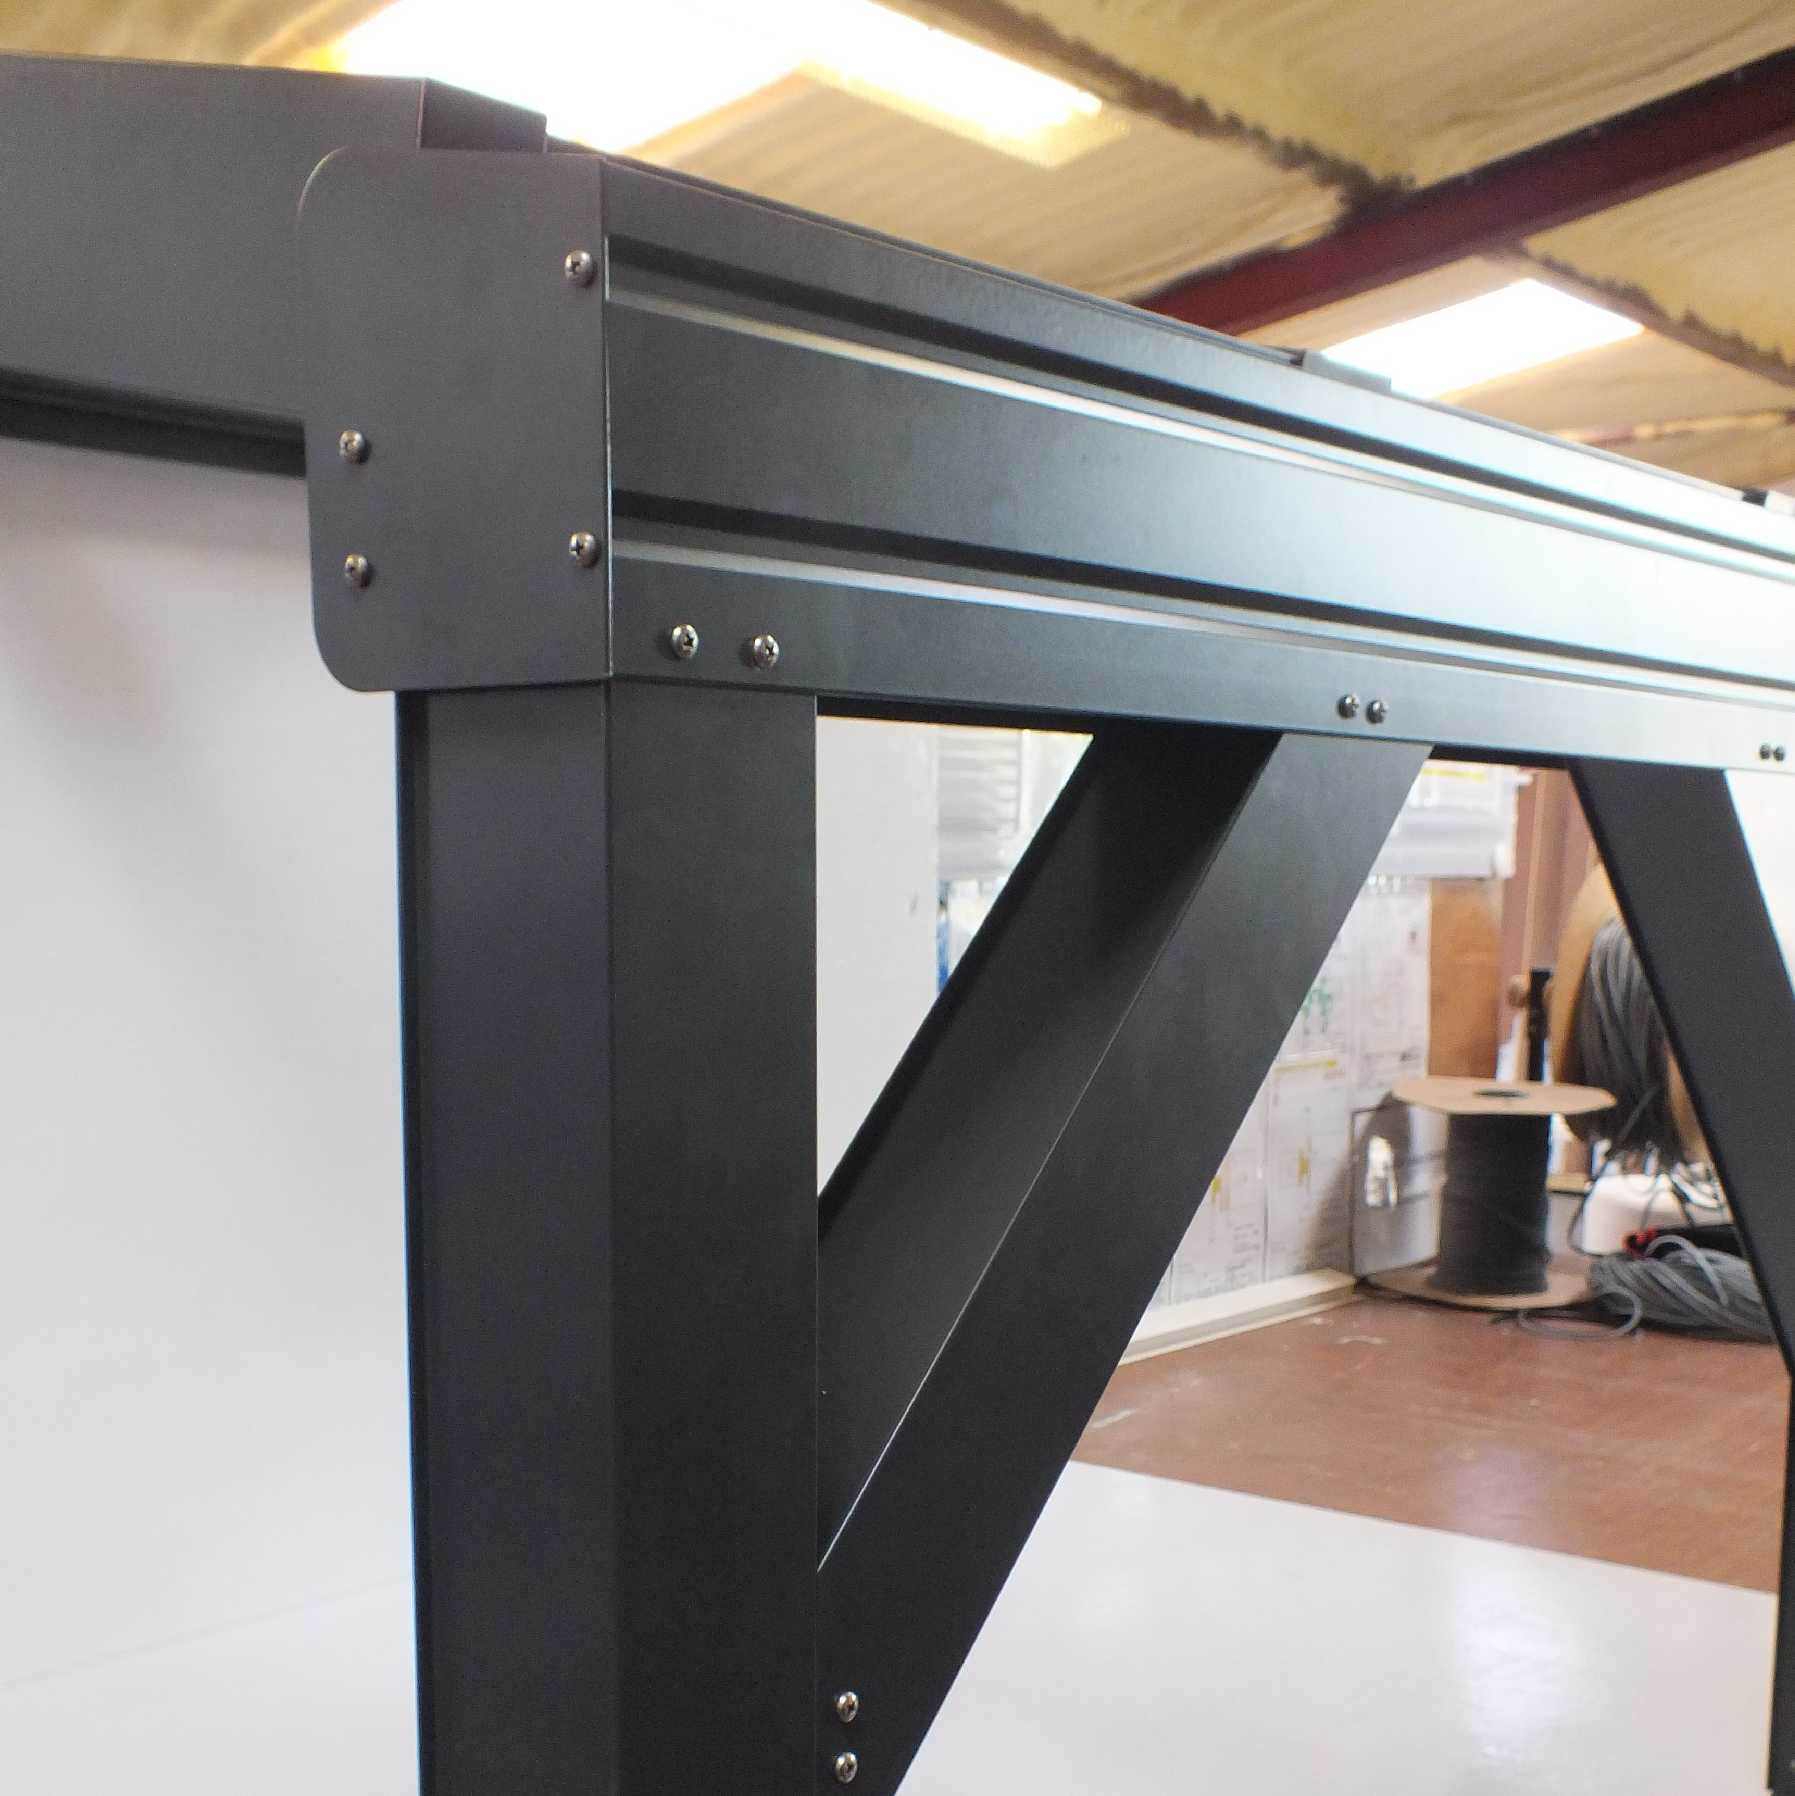 Omega Smart Lean-To Canopy, Anthracite Grey, UNGLAZED for 6mm Glazing - 8.4m (W) x 4.0m (P), (4) Supporting Posts from Omega Build